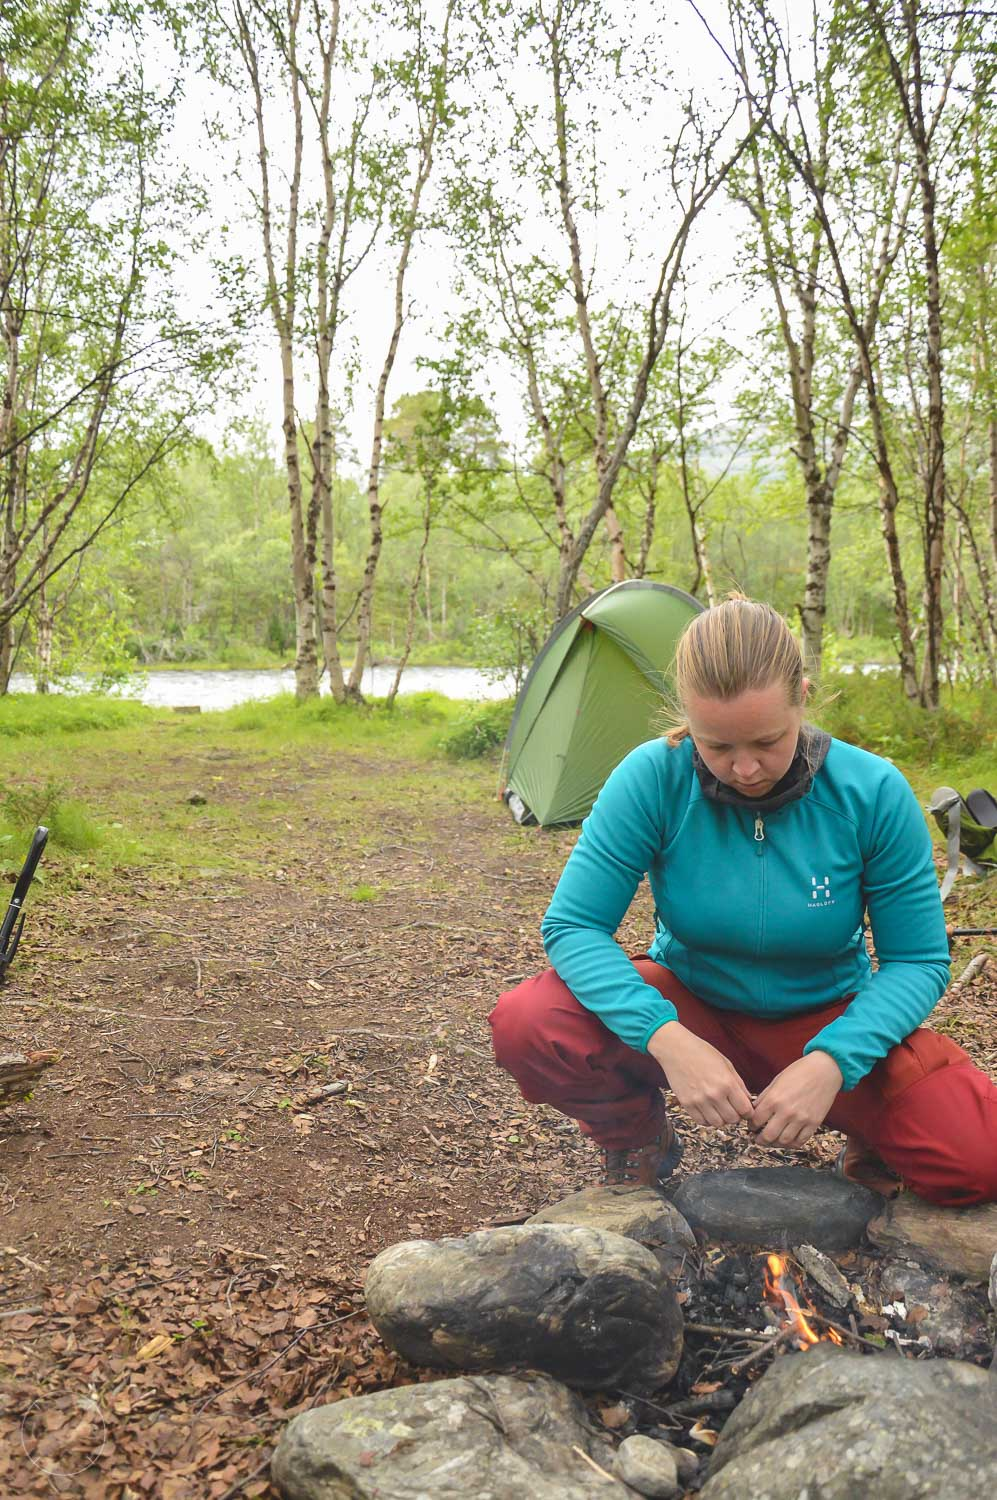 Making a fire on your wild camping trip